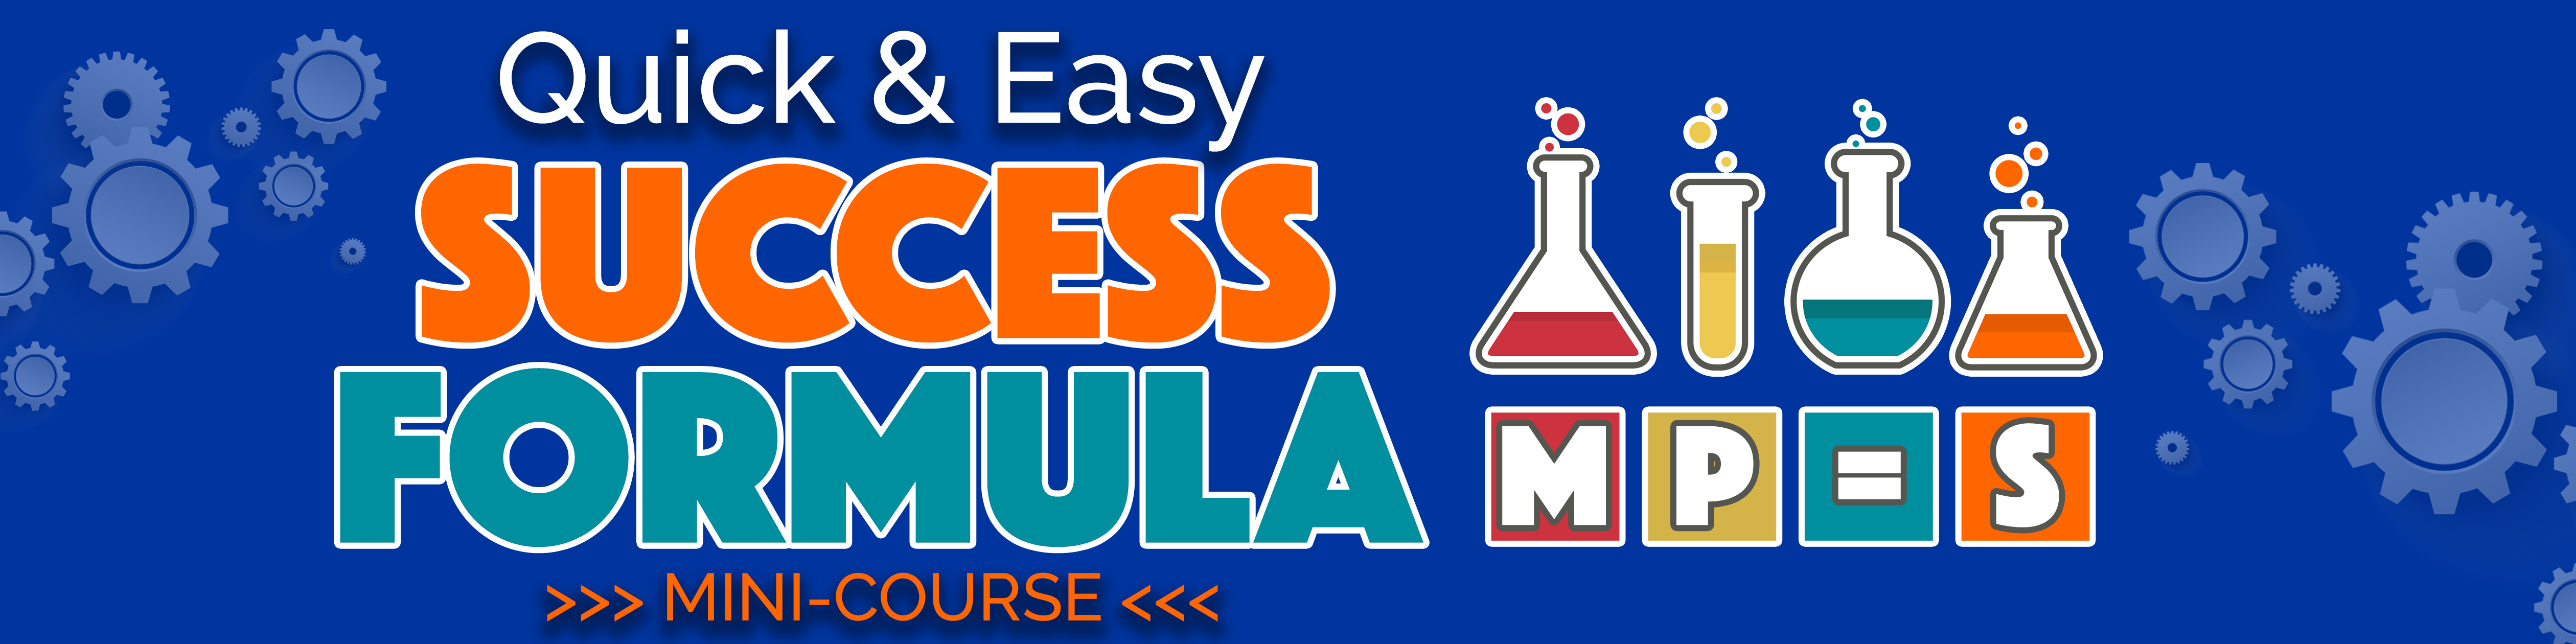 Quick & Easy Success Formula MINI-COURSE Presented by Shawn Hansen